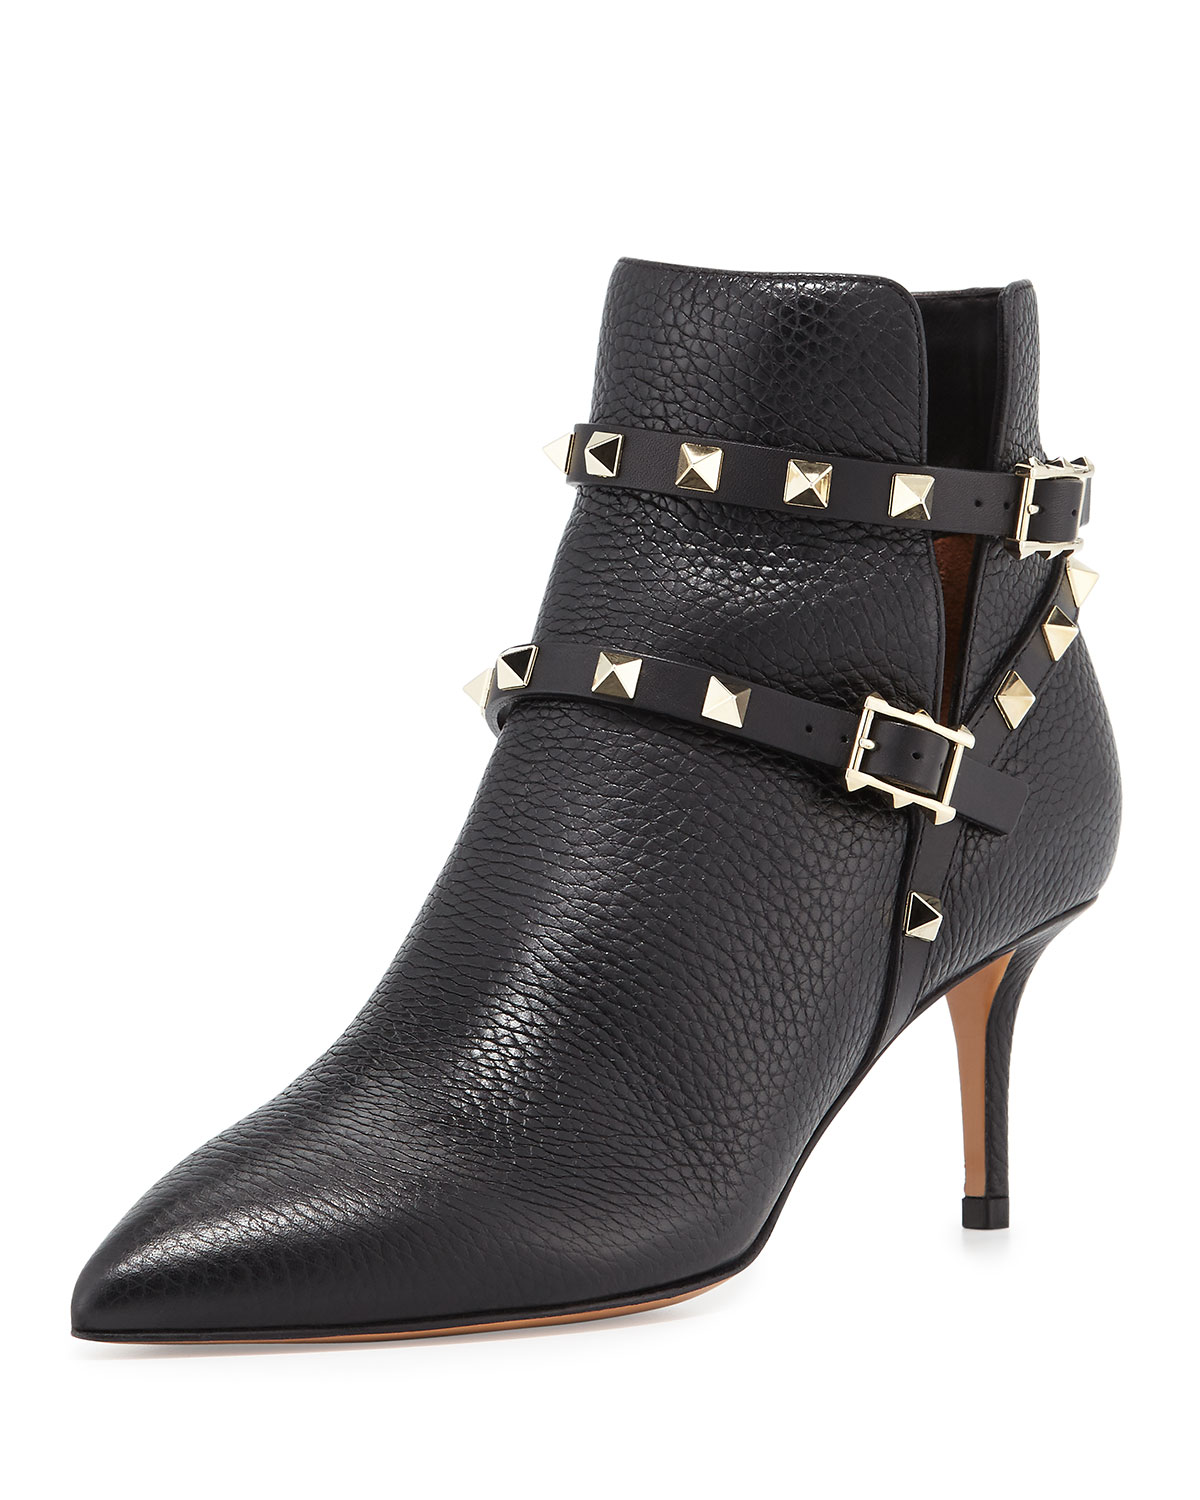 c997f0e07ac5 Valentino Garavani Rockstud Grained Leather 65mm Ankle Boot